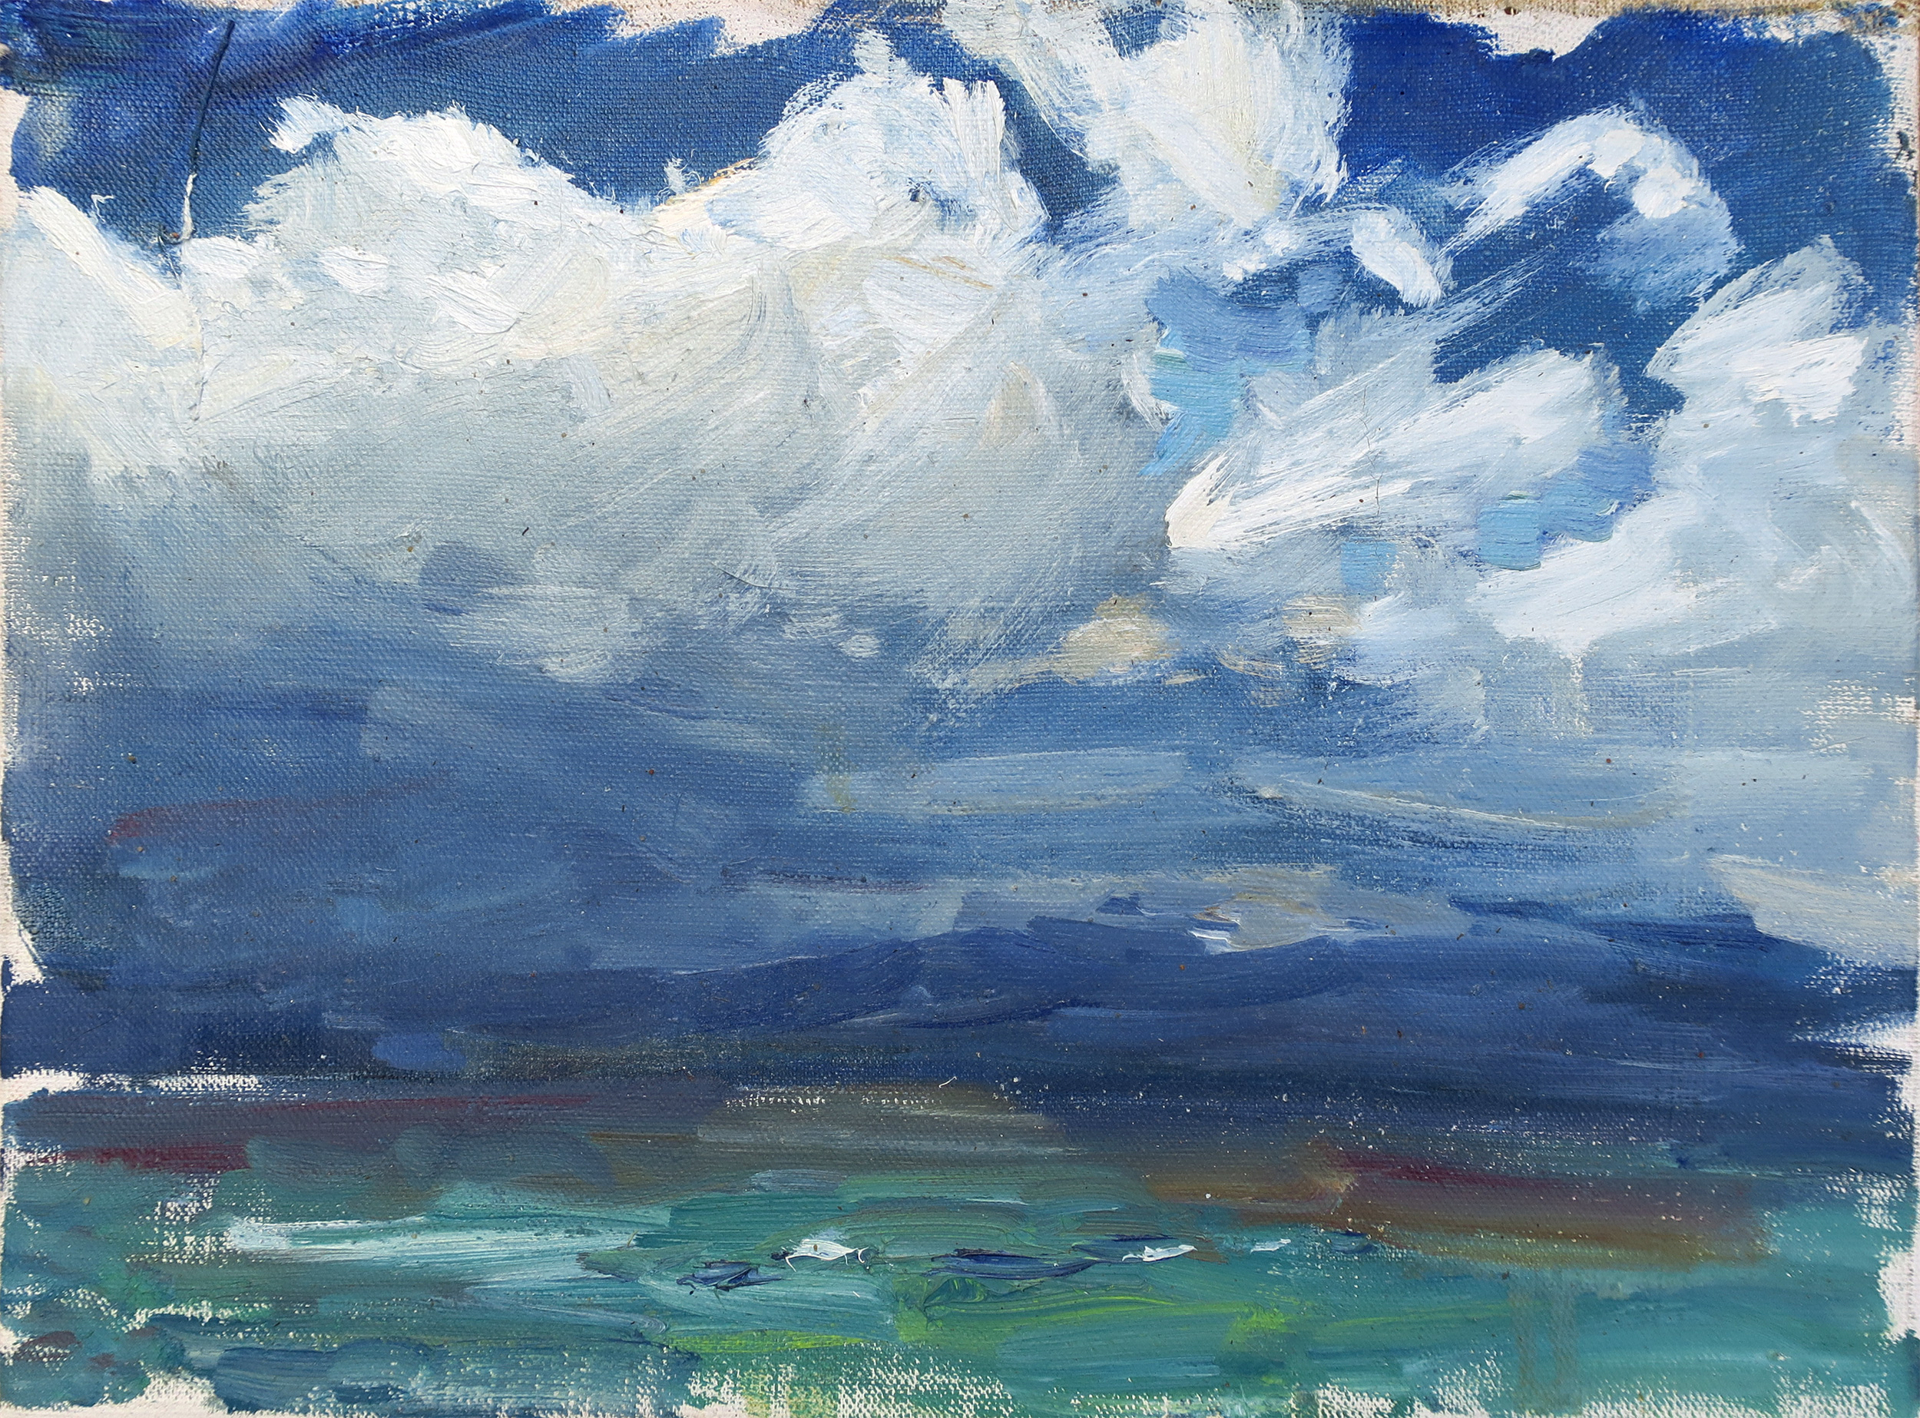 Before a Thunderstorm (Lake Baikal) by Ulrich Gleiter